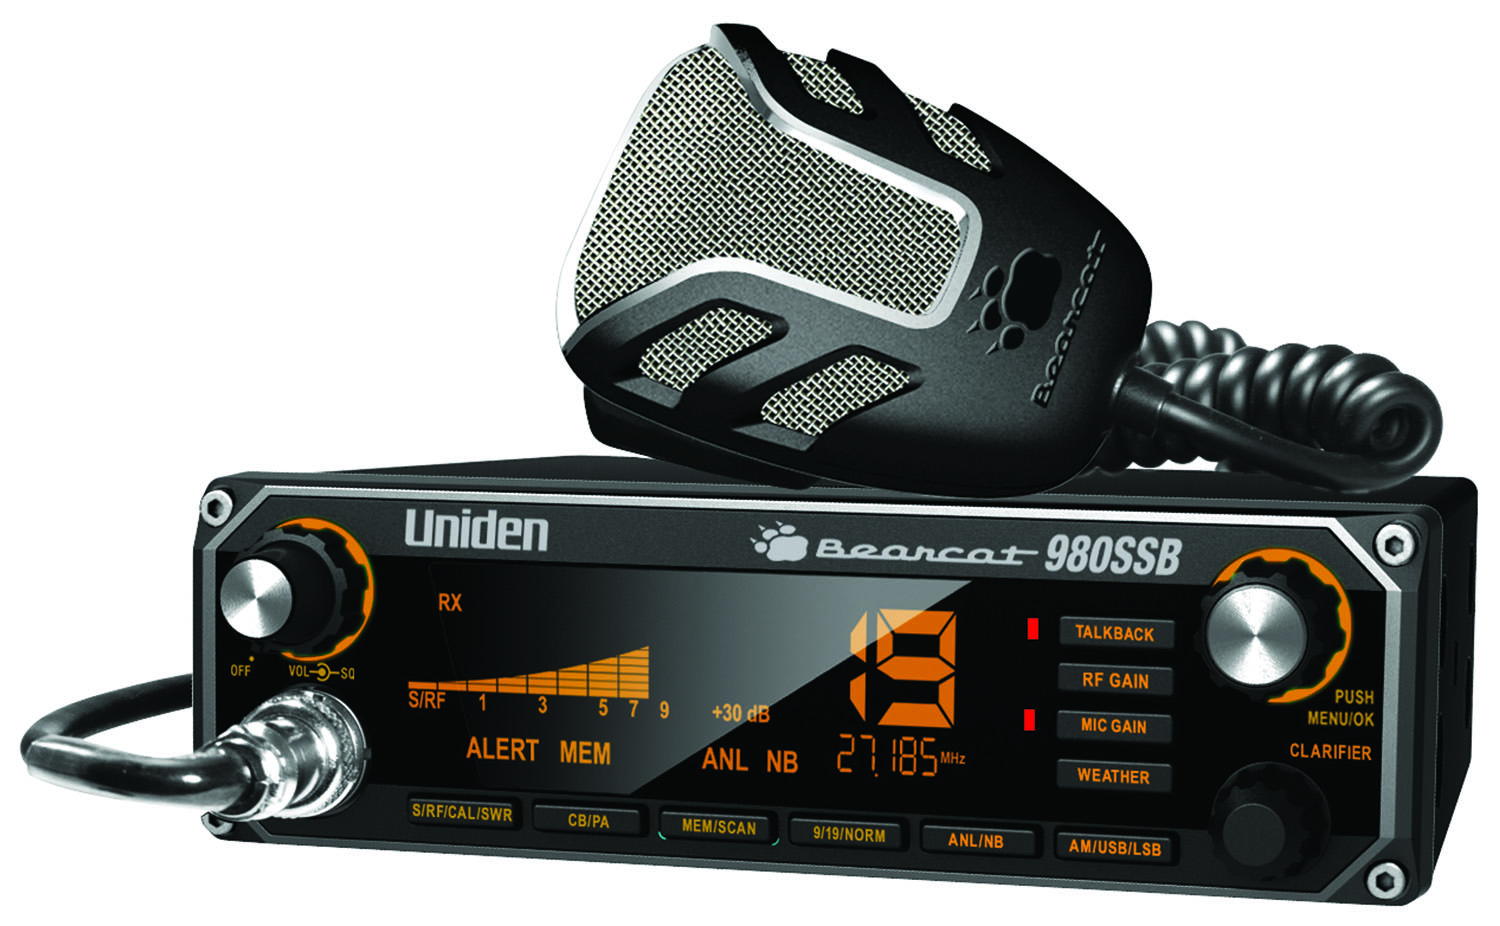 Uniden Bearcat 980 CB Radio with Upper and Lower Side Band